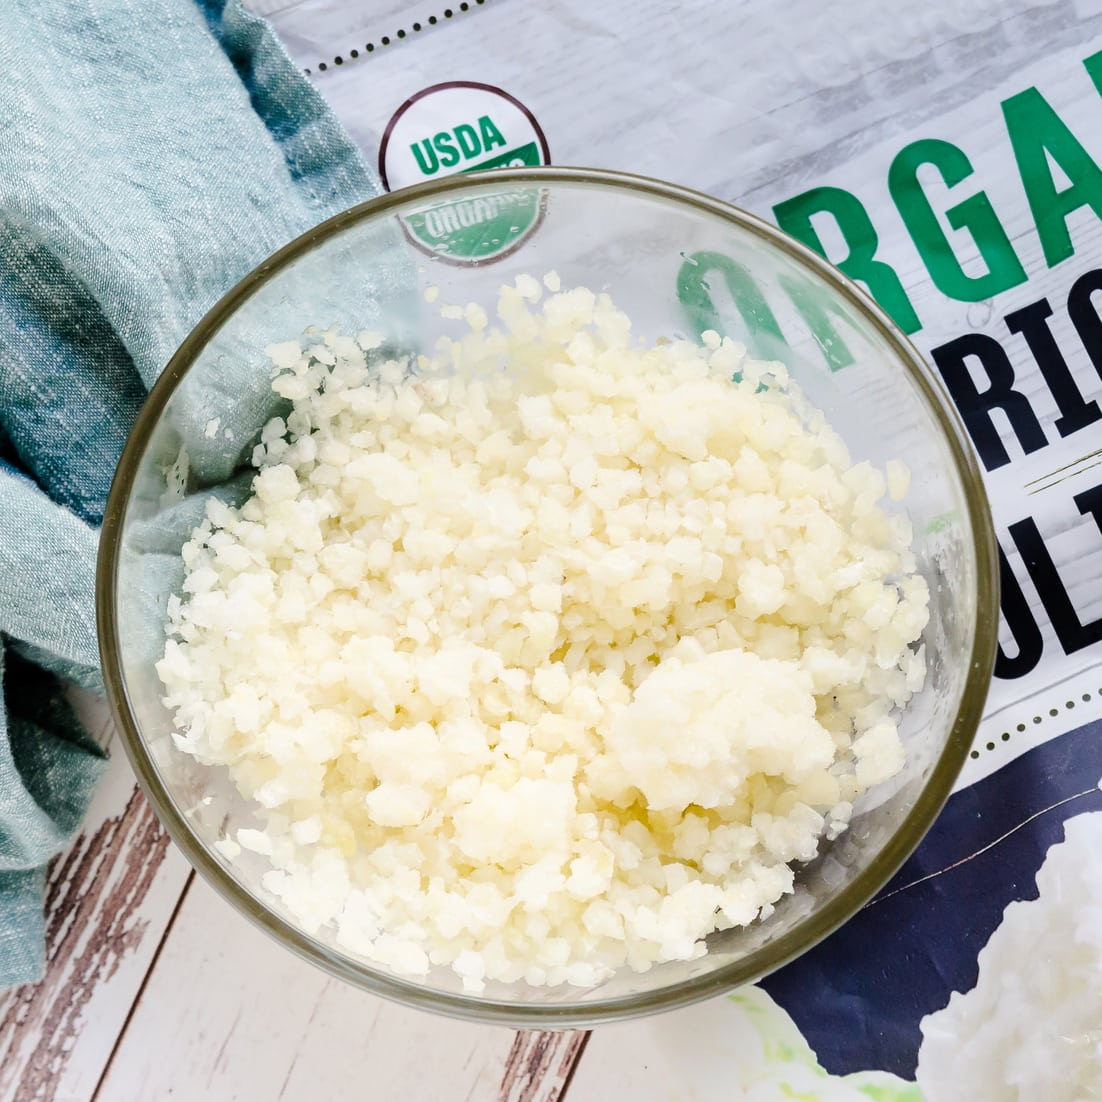 Keto Cauliflower Rice being prepped in a glass bowl